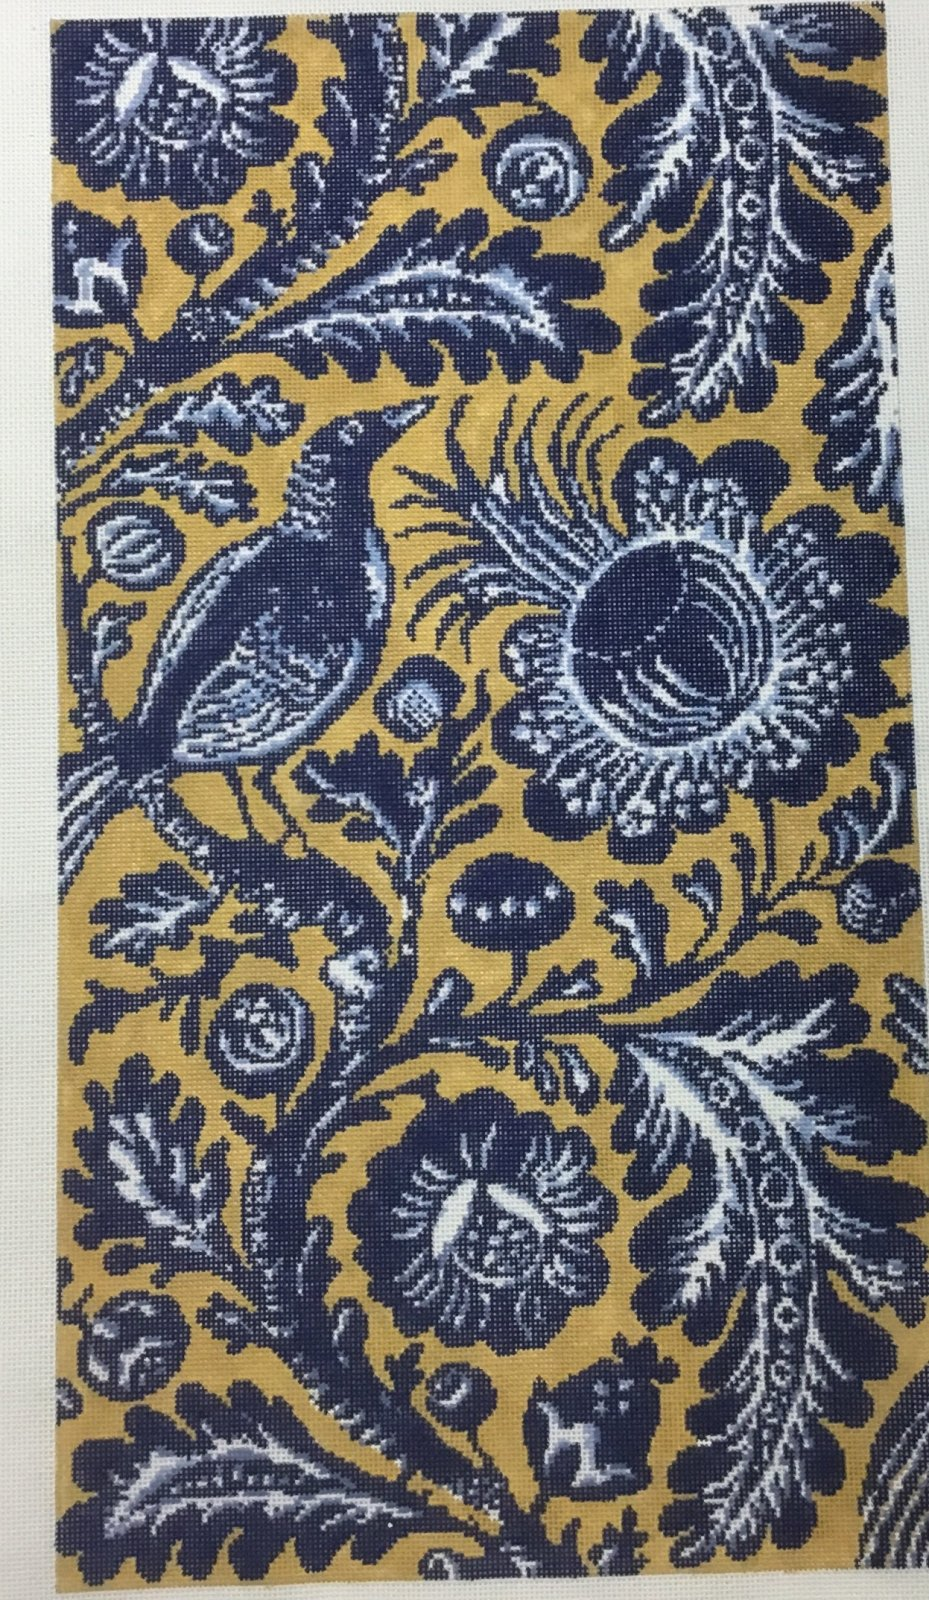 Blue and Gold Floral with Bird,18 ct.,10x18